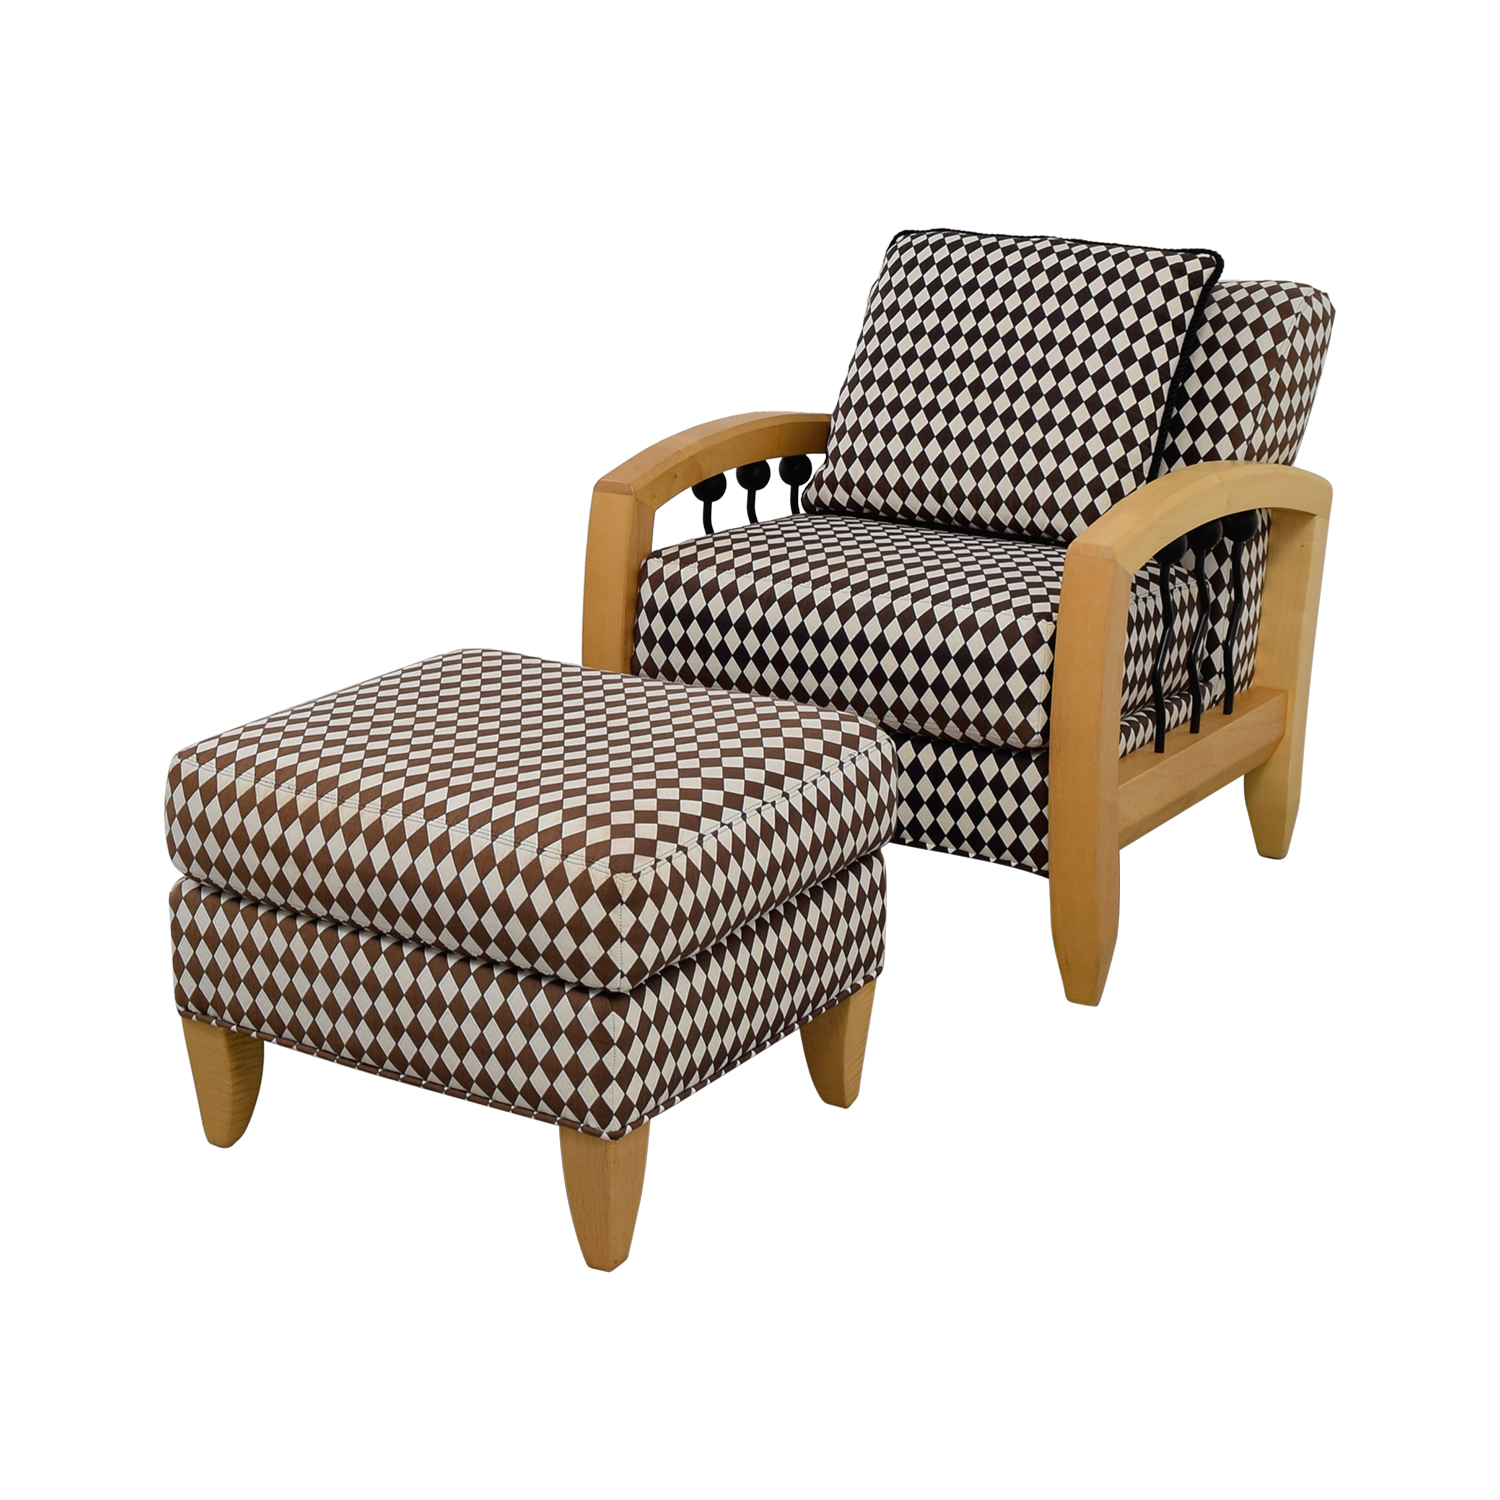 Superb 73 Off Thayer Coggin Thayer Coggin Cherry Wood Black And White Checkered Accent Chair With Ottoman Chairs Theyellowbook Wood Chair Design Ideas Theyellowbookinfo